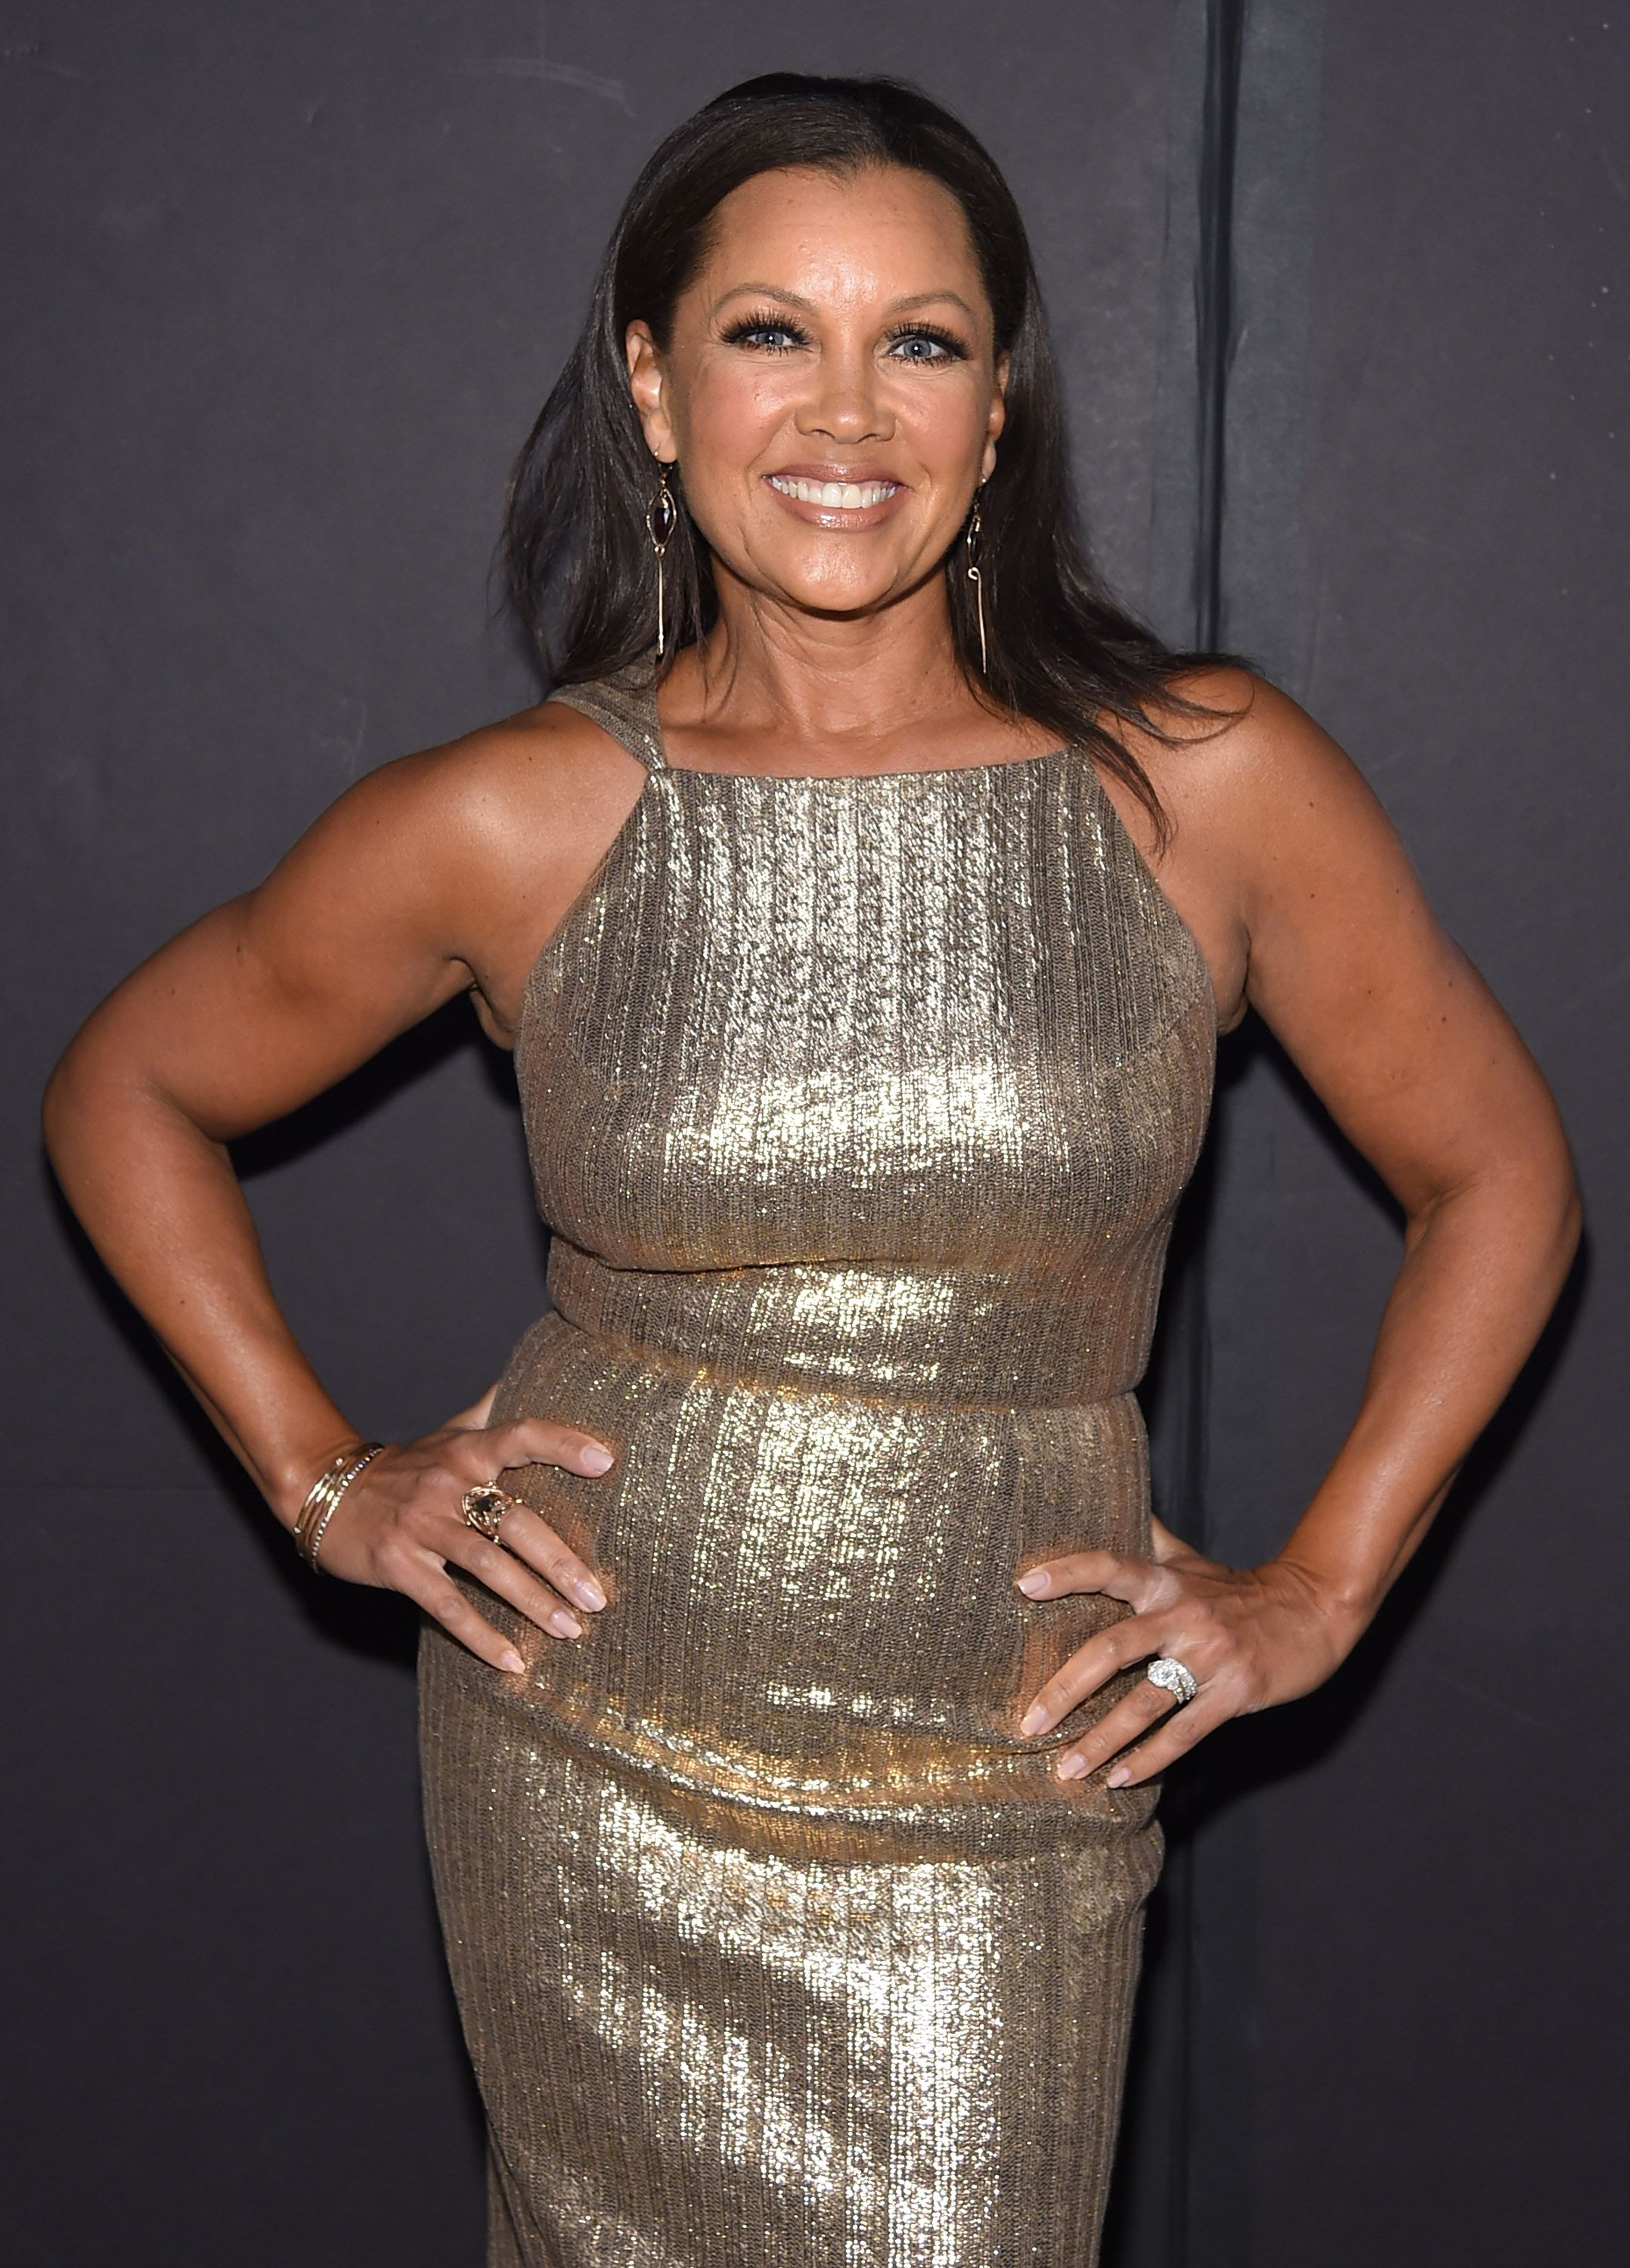 Vanessa Williams at the Christian Siriano fashion show on September 9, 2017 in New York. │Photo: Getty Images